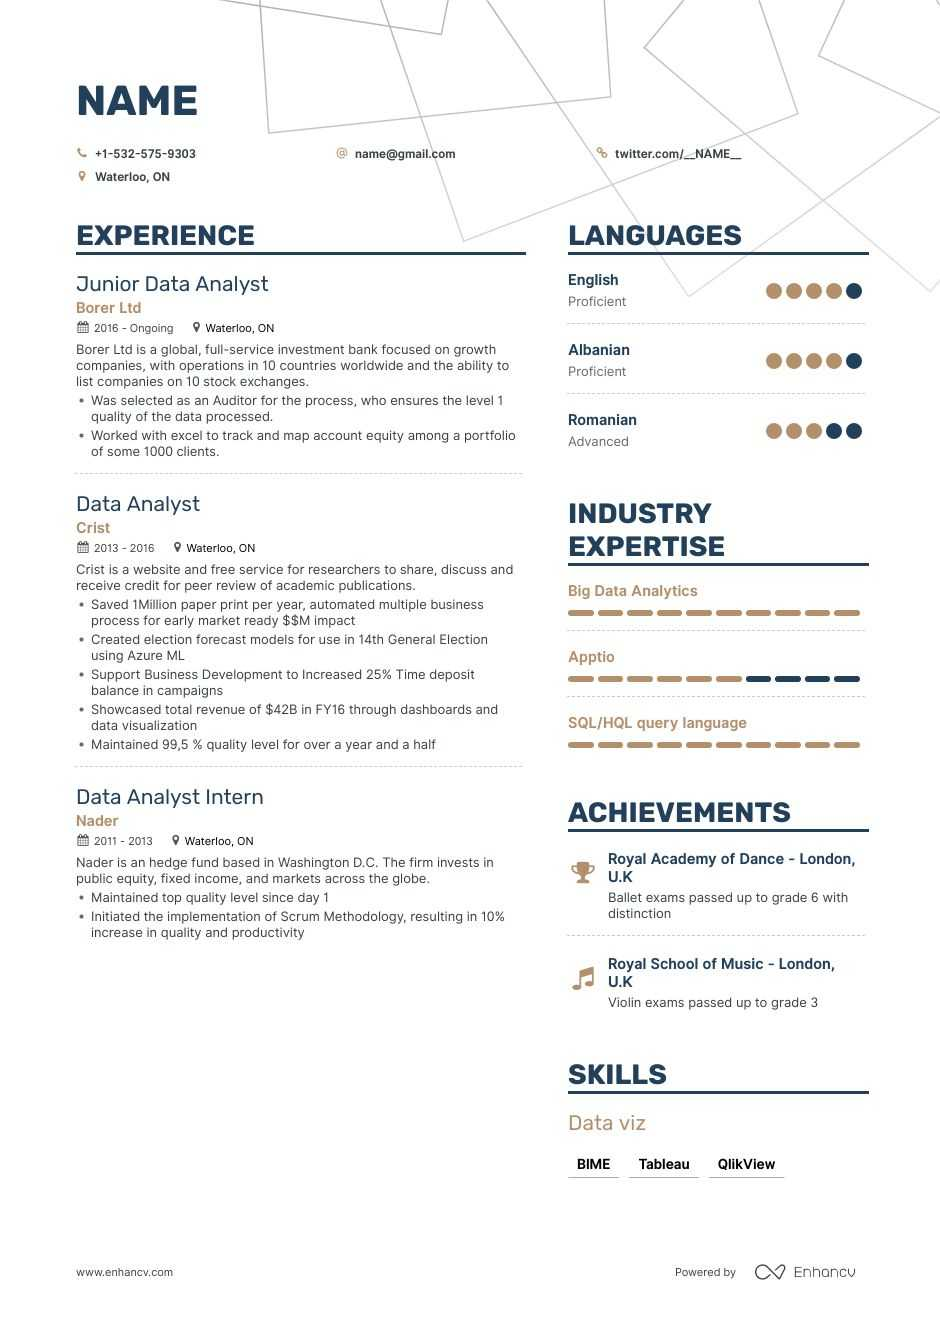 security analyst resume examples skills templates more for entry level cyber sample high Resume Entry Level Cyber Security Analyst Resume Sample